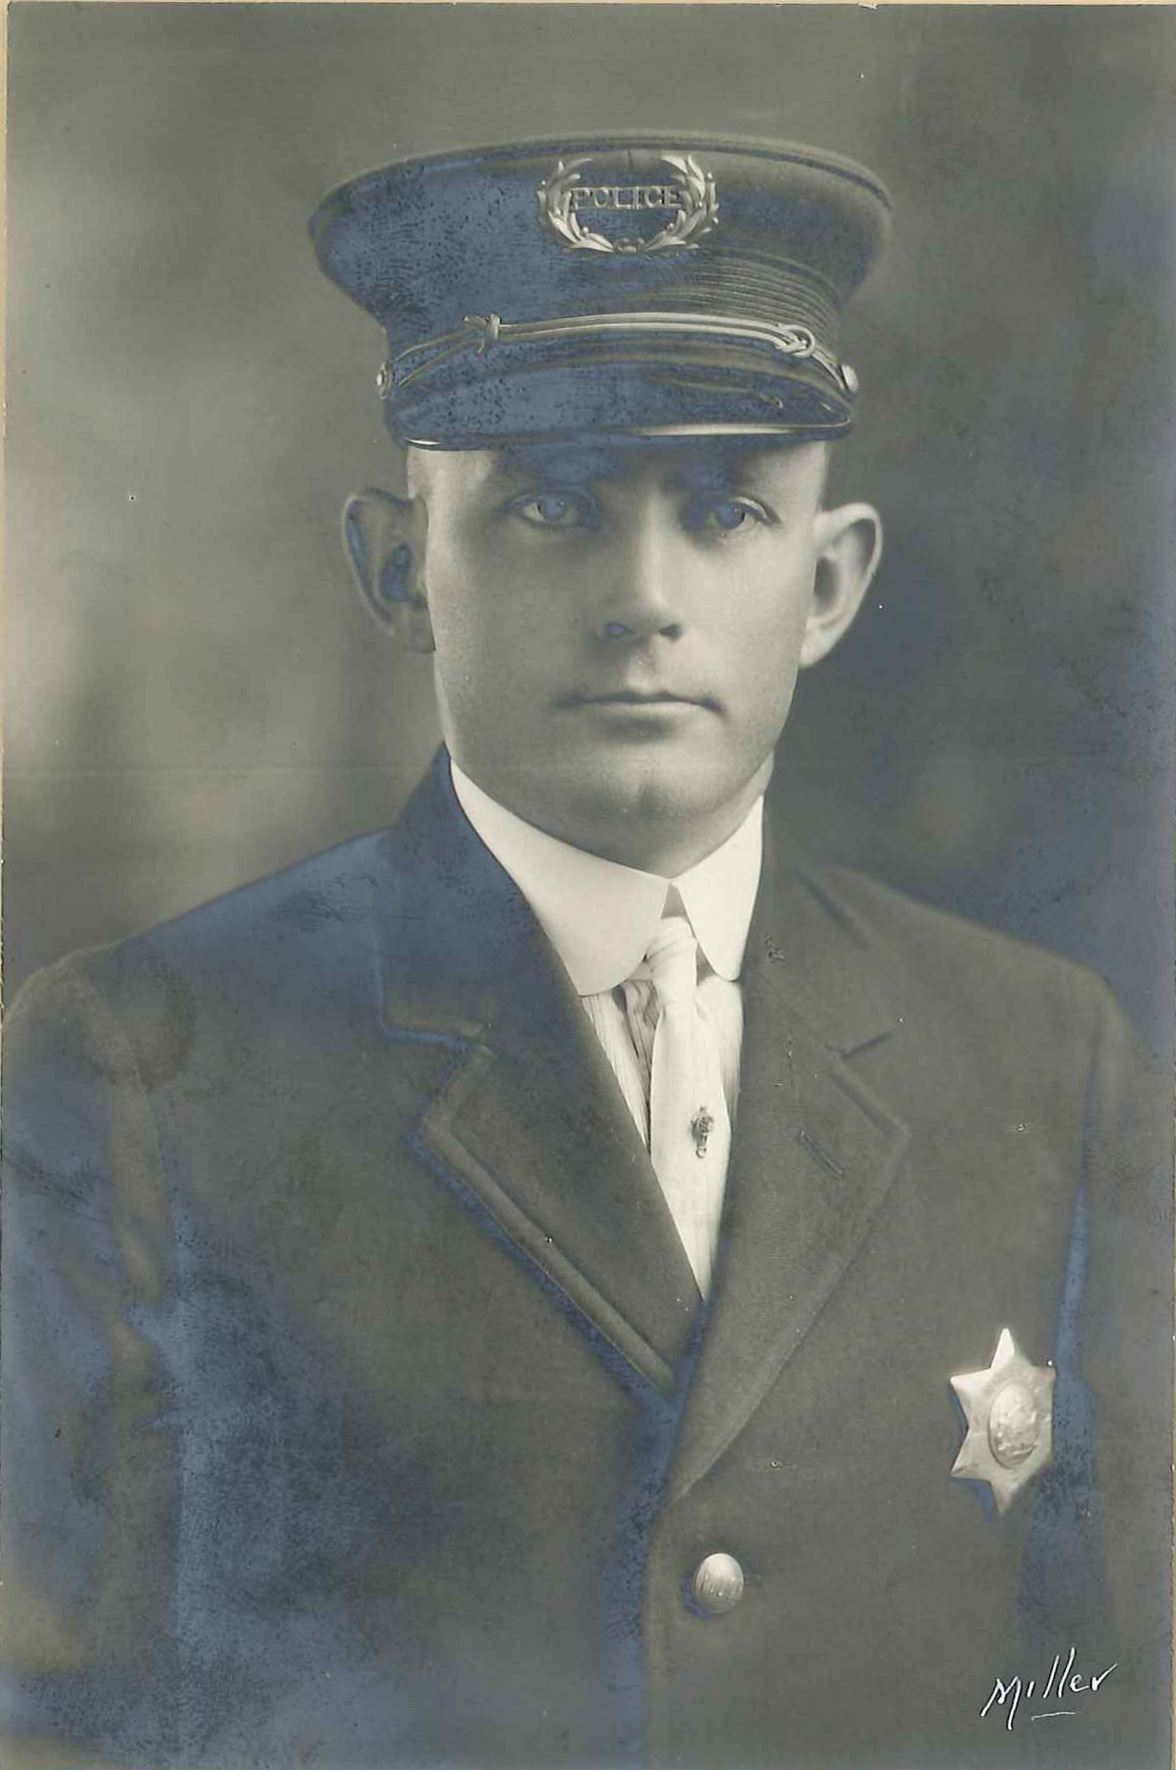 Image of Lloyd McCanne